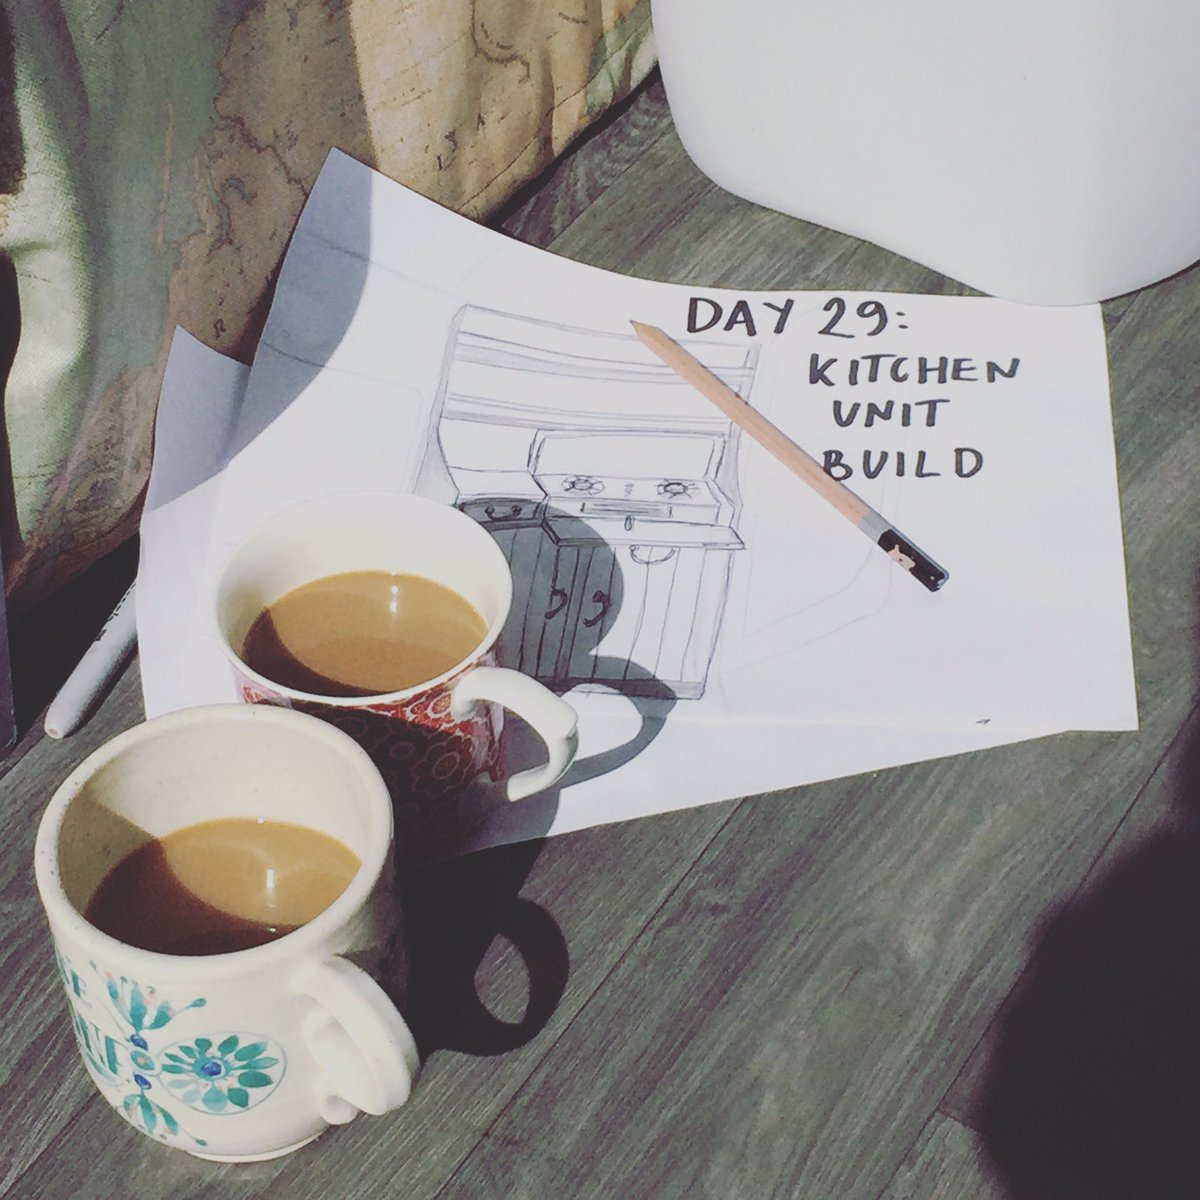 Today we started creating our kitchen units #builtnotbought #coffeebreak #sketch #Vanlife #vwt5<br>http://pic.twitter.com/cNmRFlmG1F